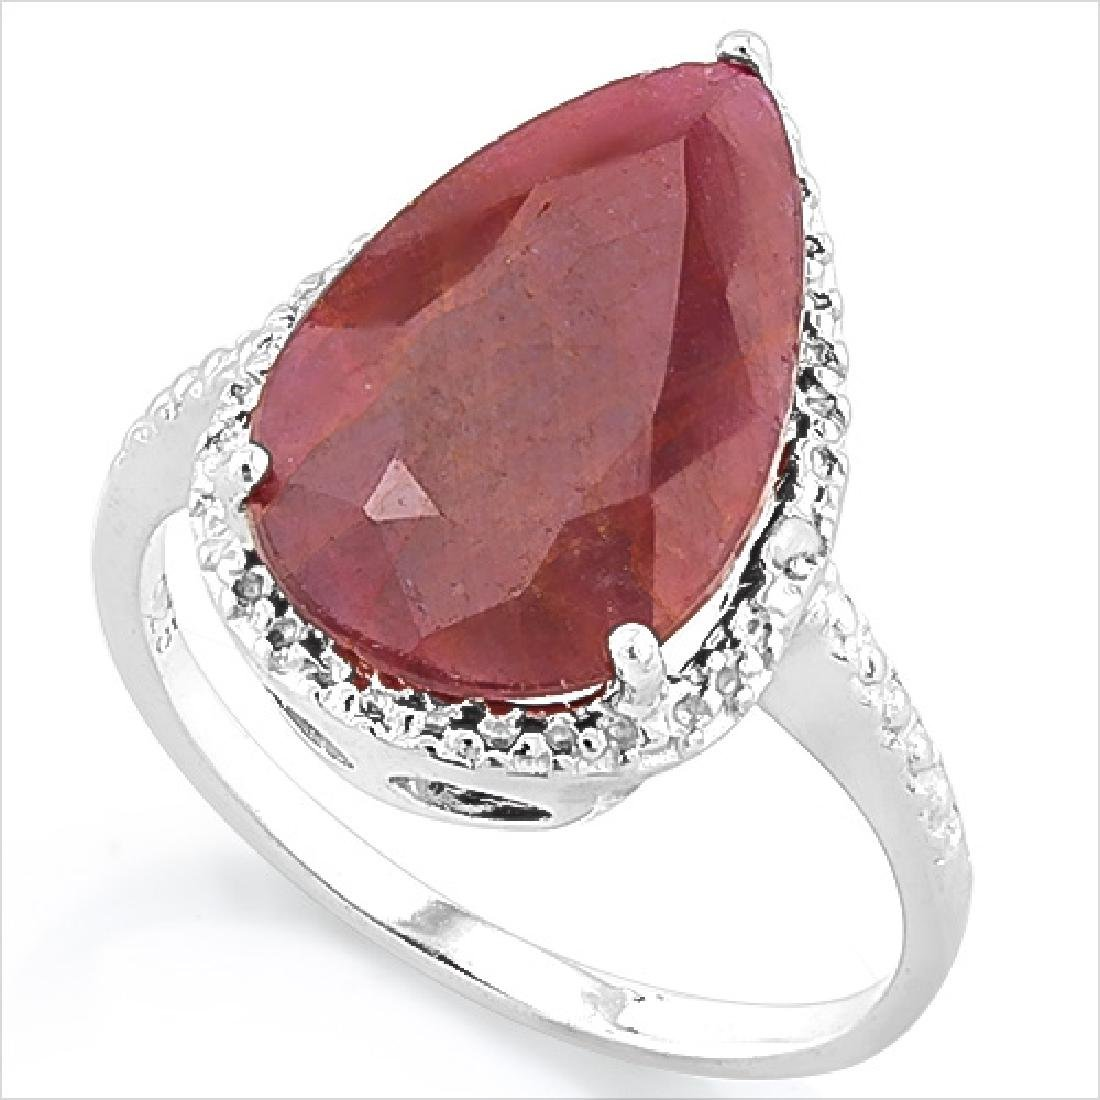 FABULOUS 6CT GENUINE PEAR CUT FACETED RUBY RING